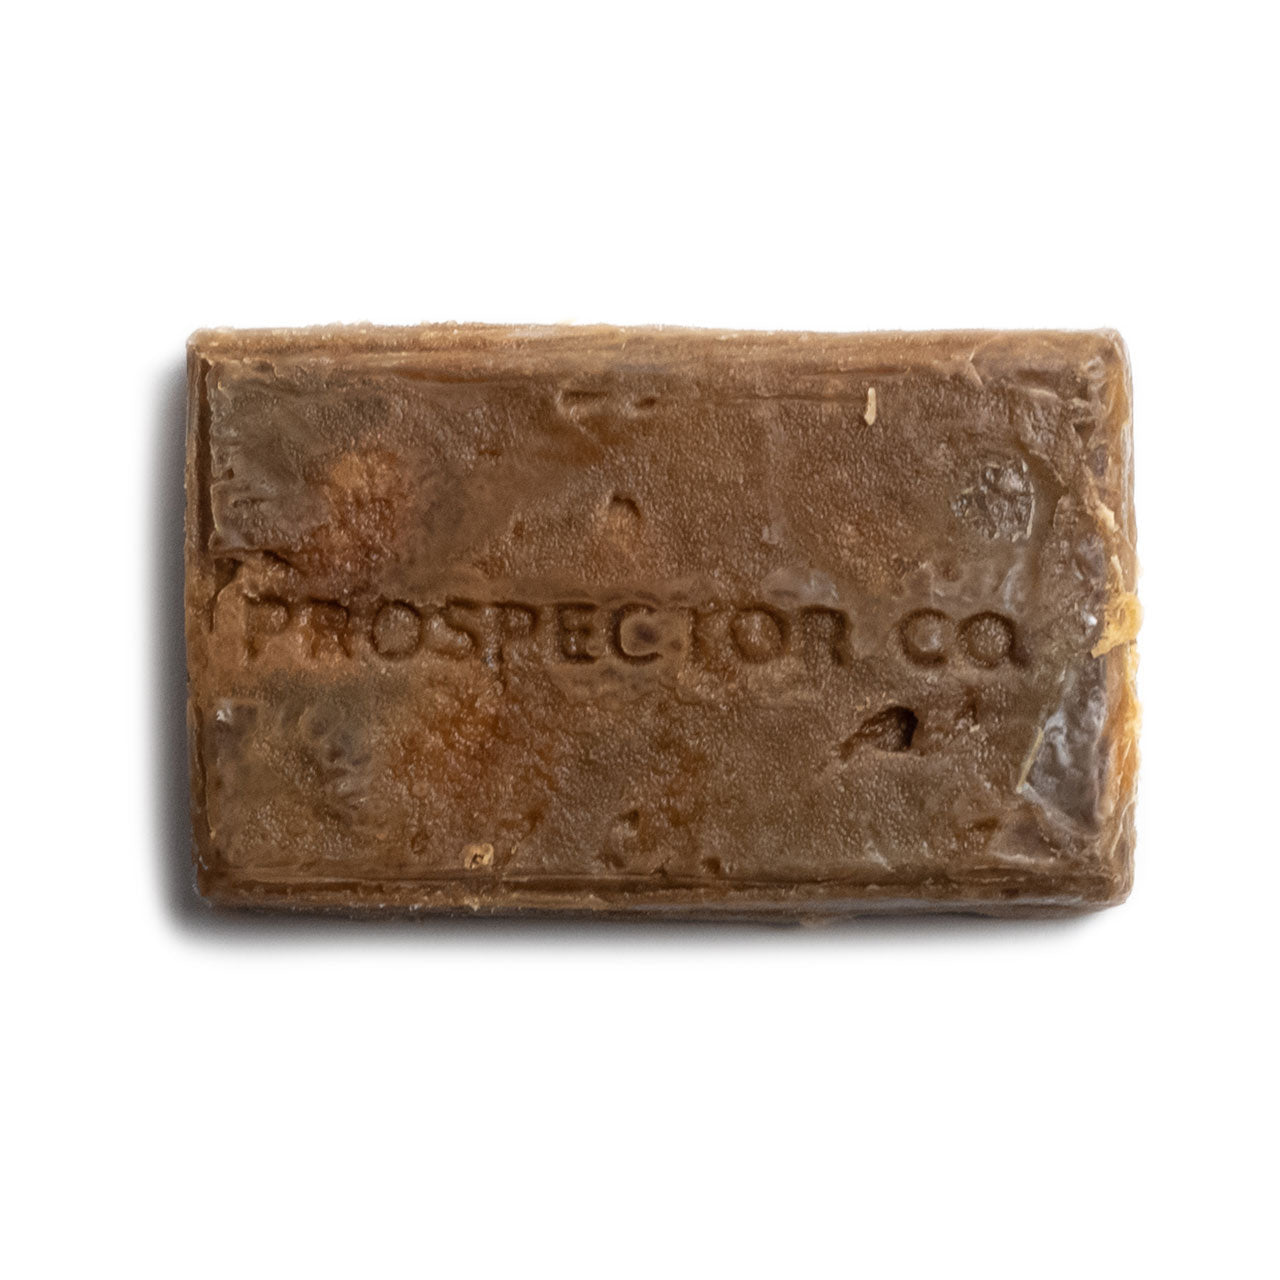 Prospector Co. Miner's Mud Bar Soap